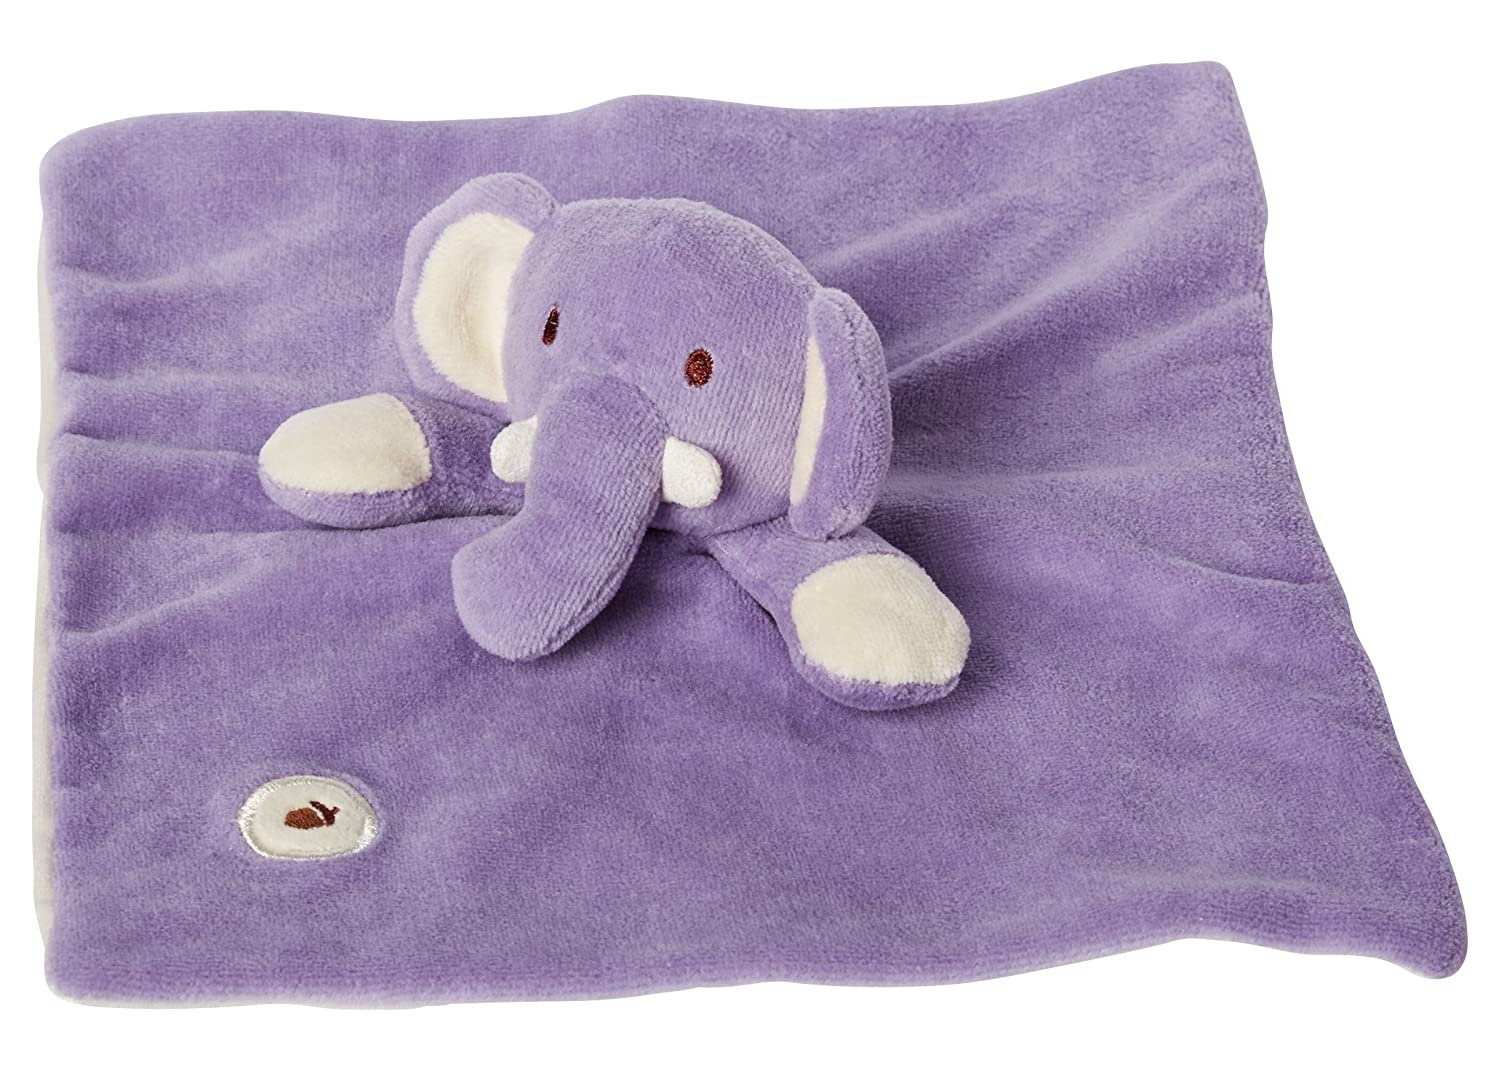 Amazon.com: Mi Natural Lovie manta, morado elefante: Baby